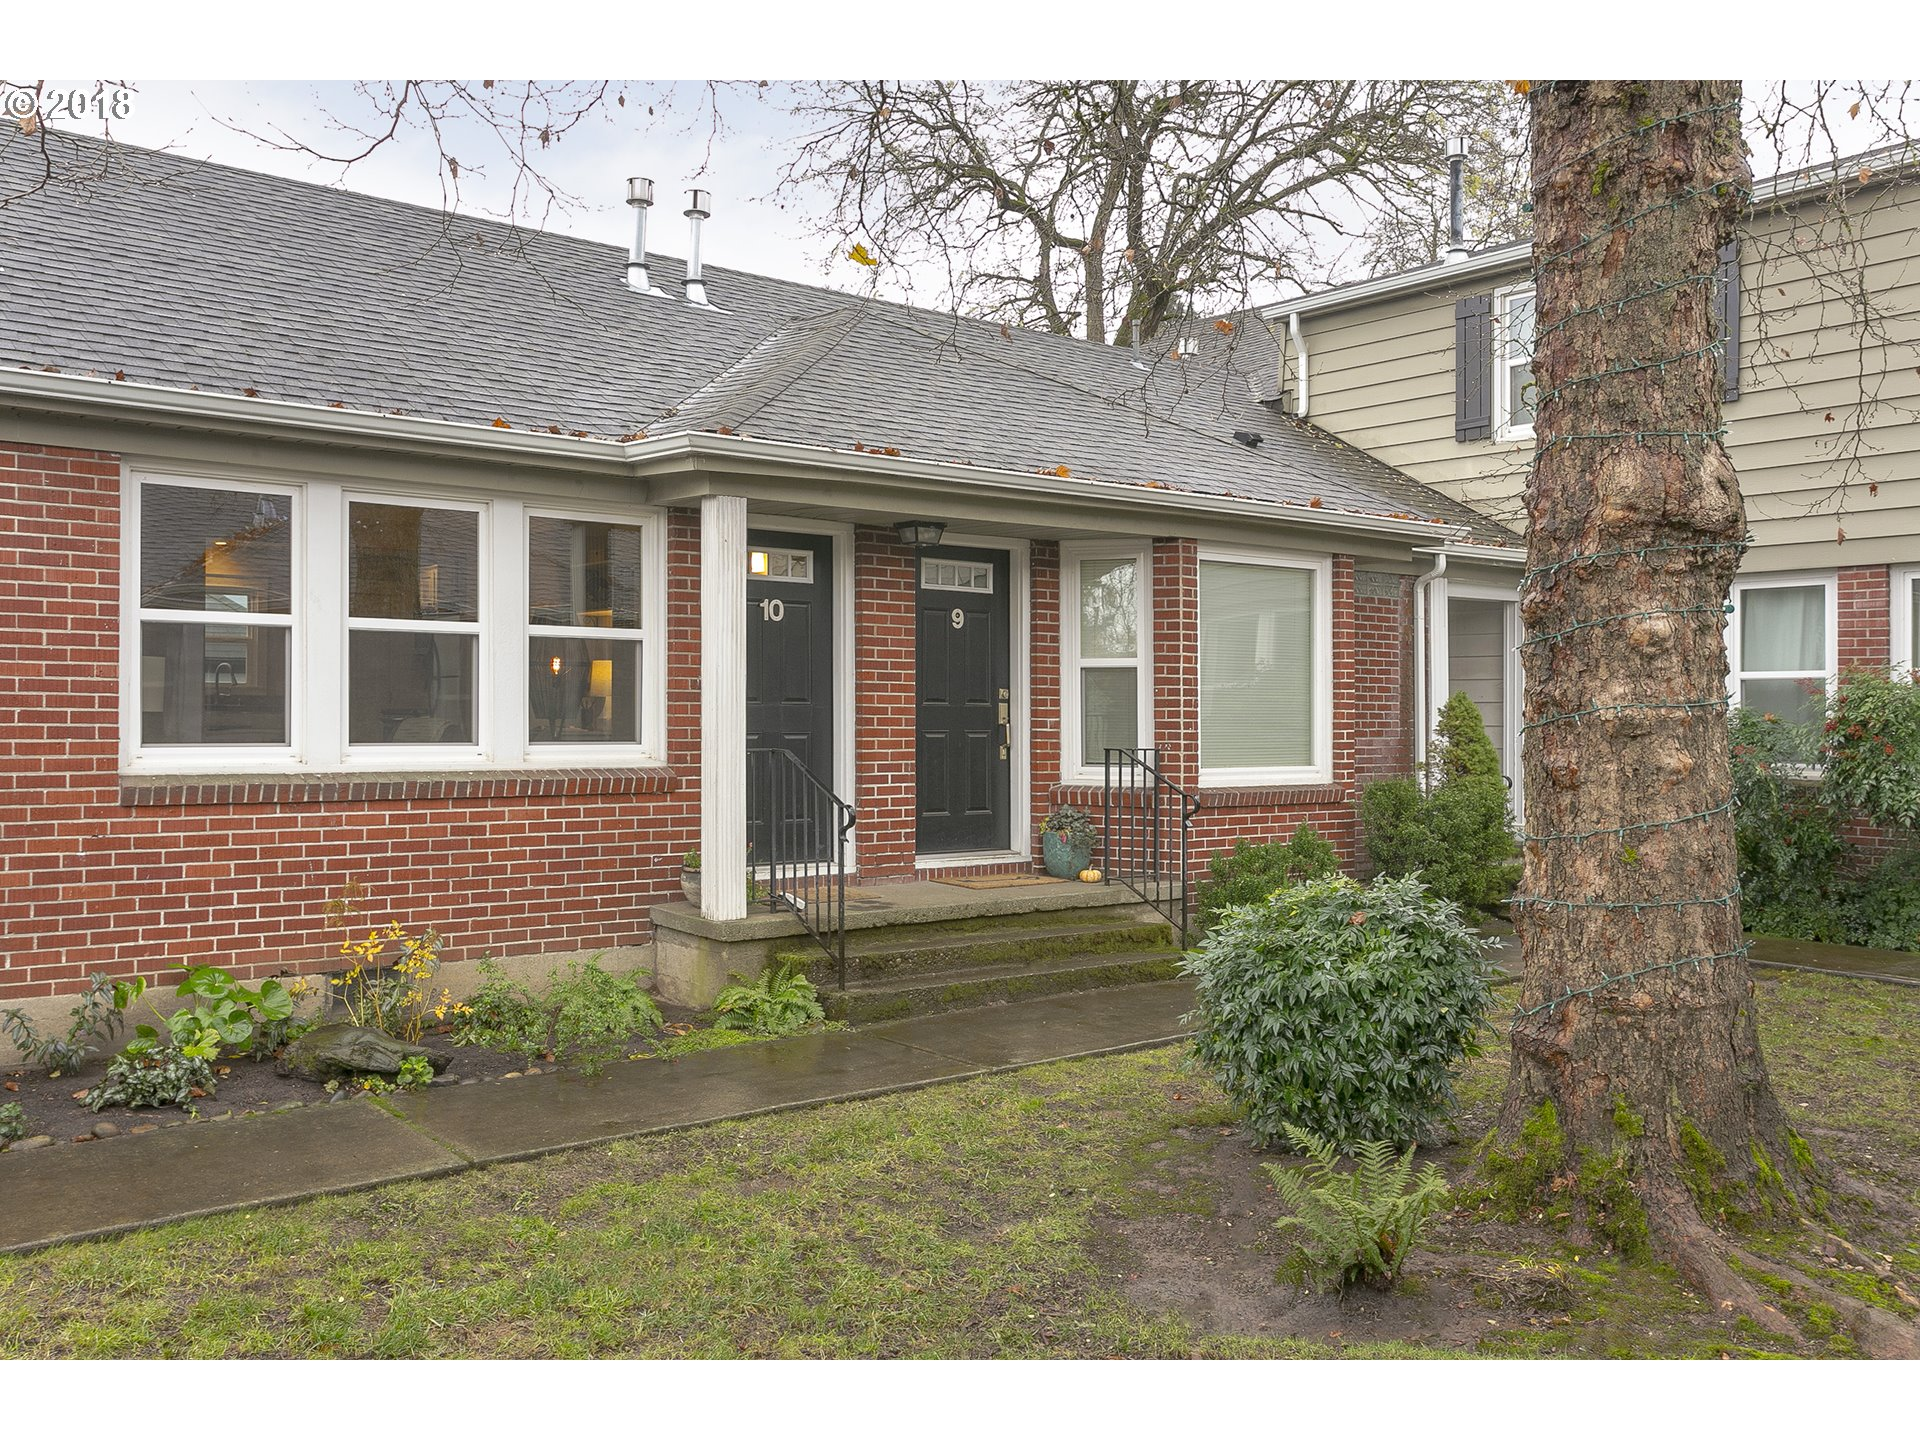 548 sq. ft 1 bedrooms 1 bathrooms  House For Sale,Portland, OR